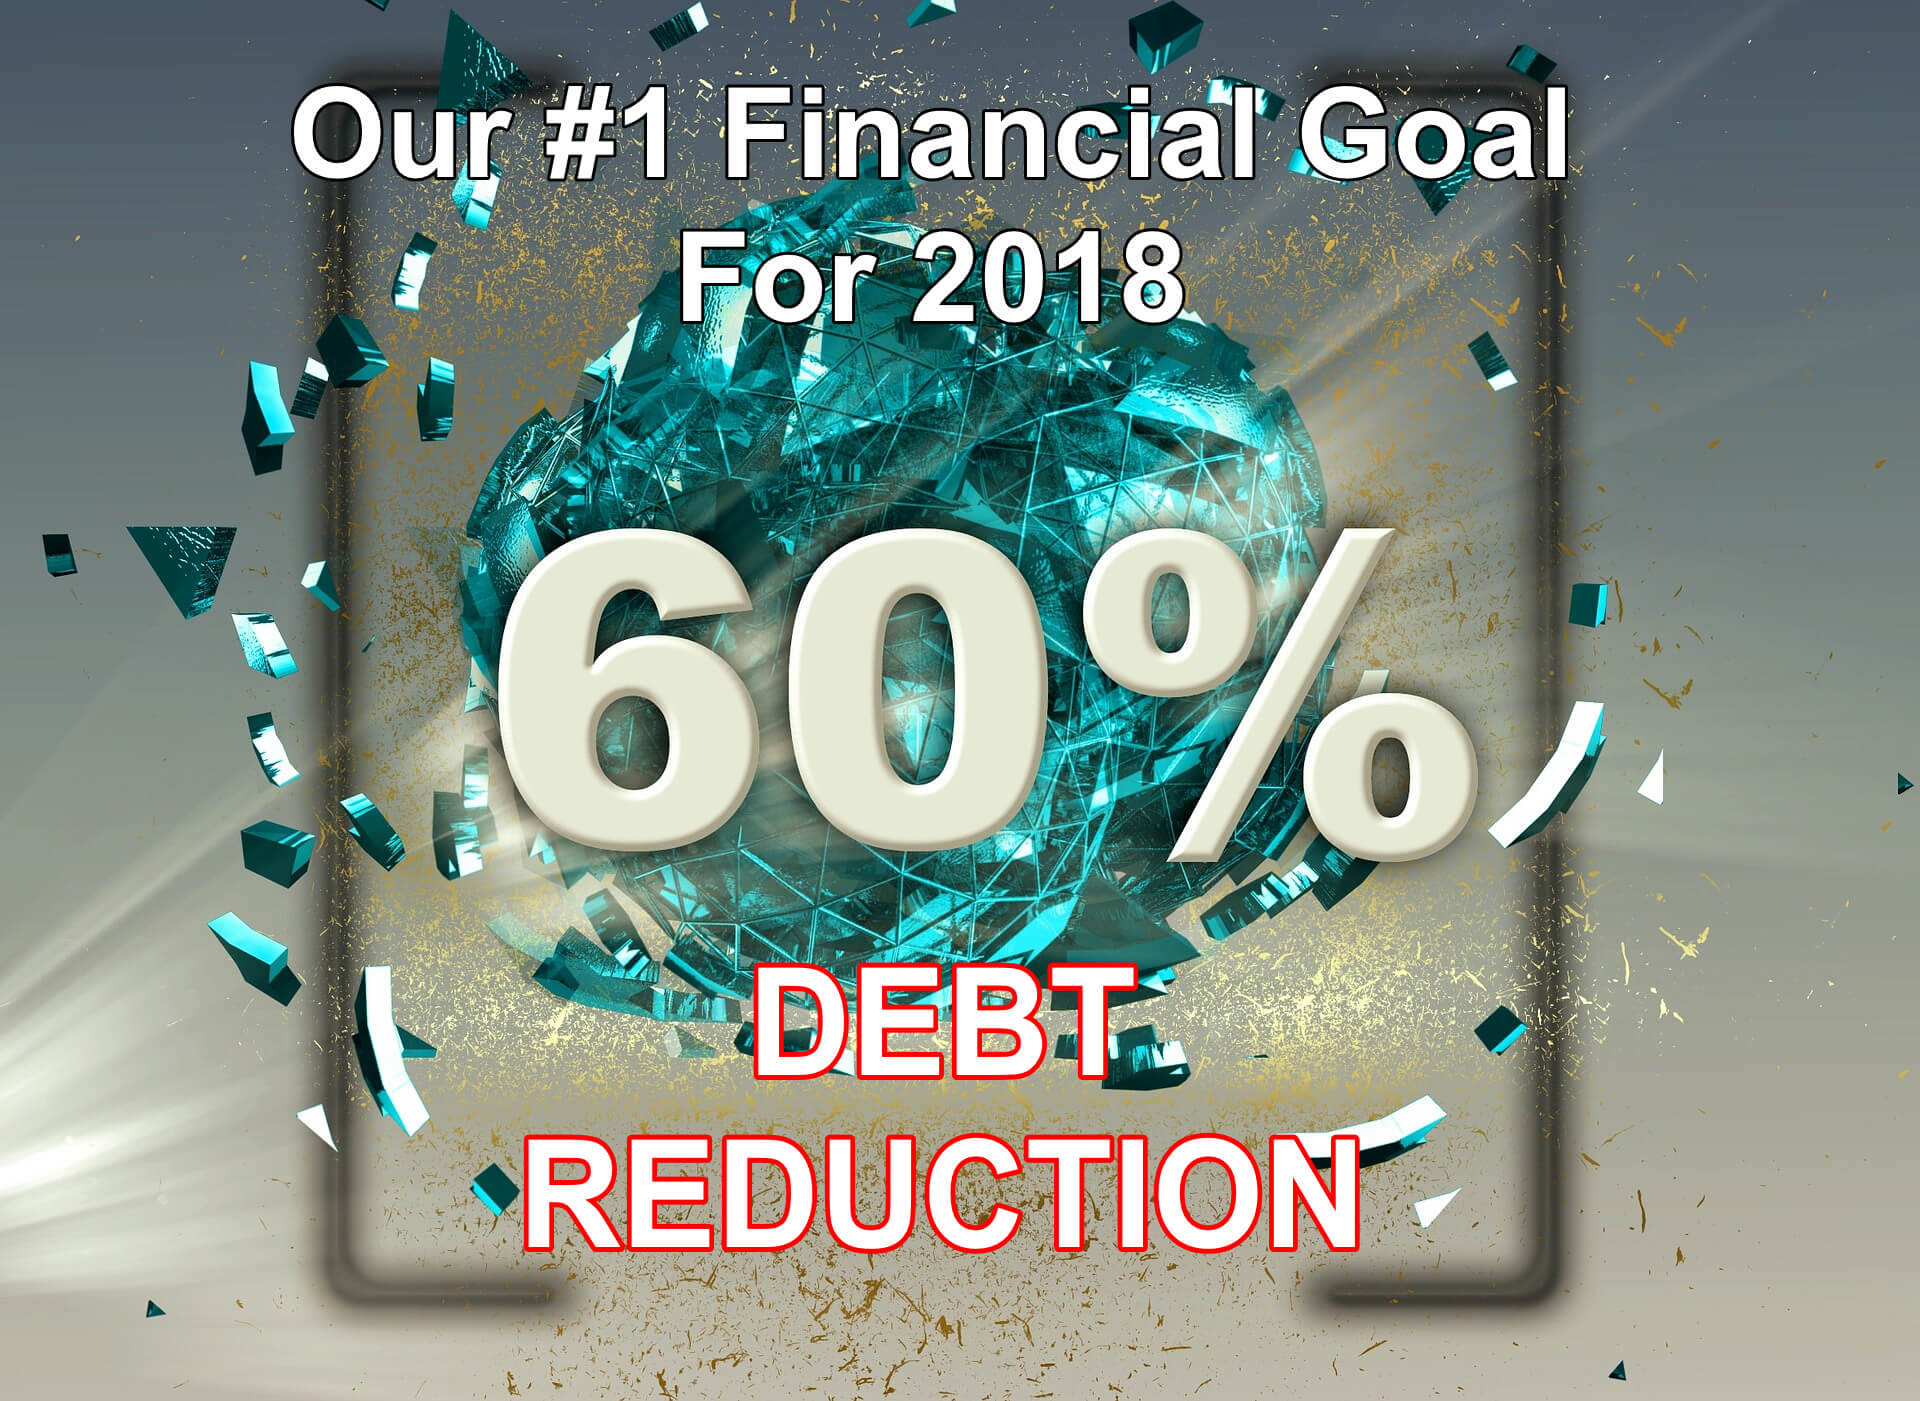 Our #1 Financial Goal For 2018